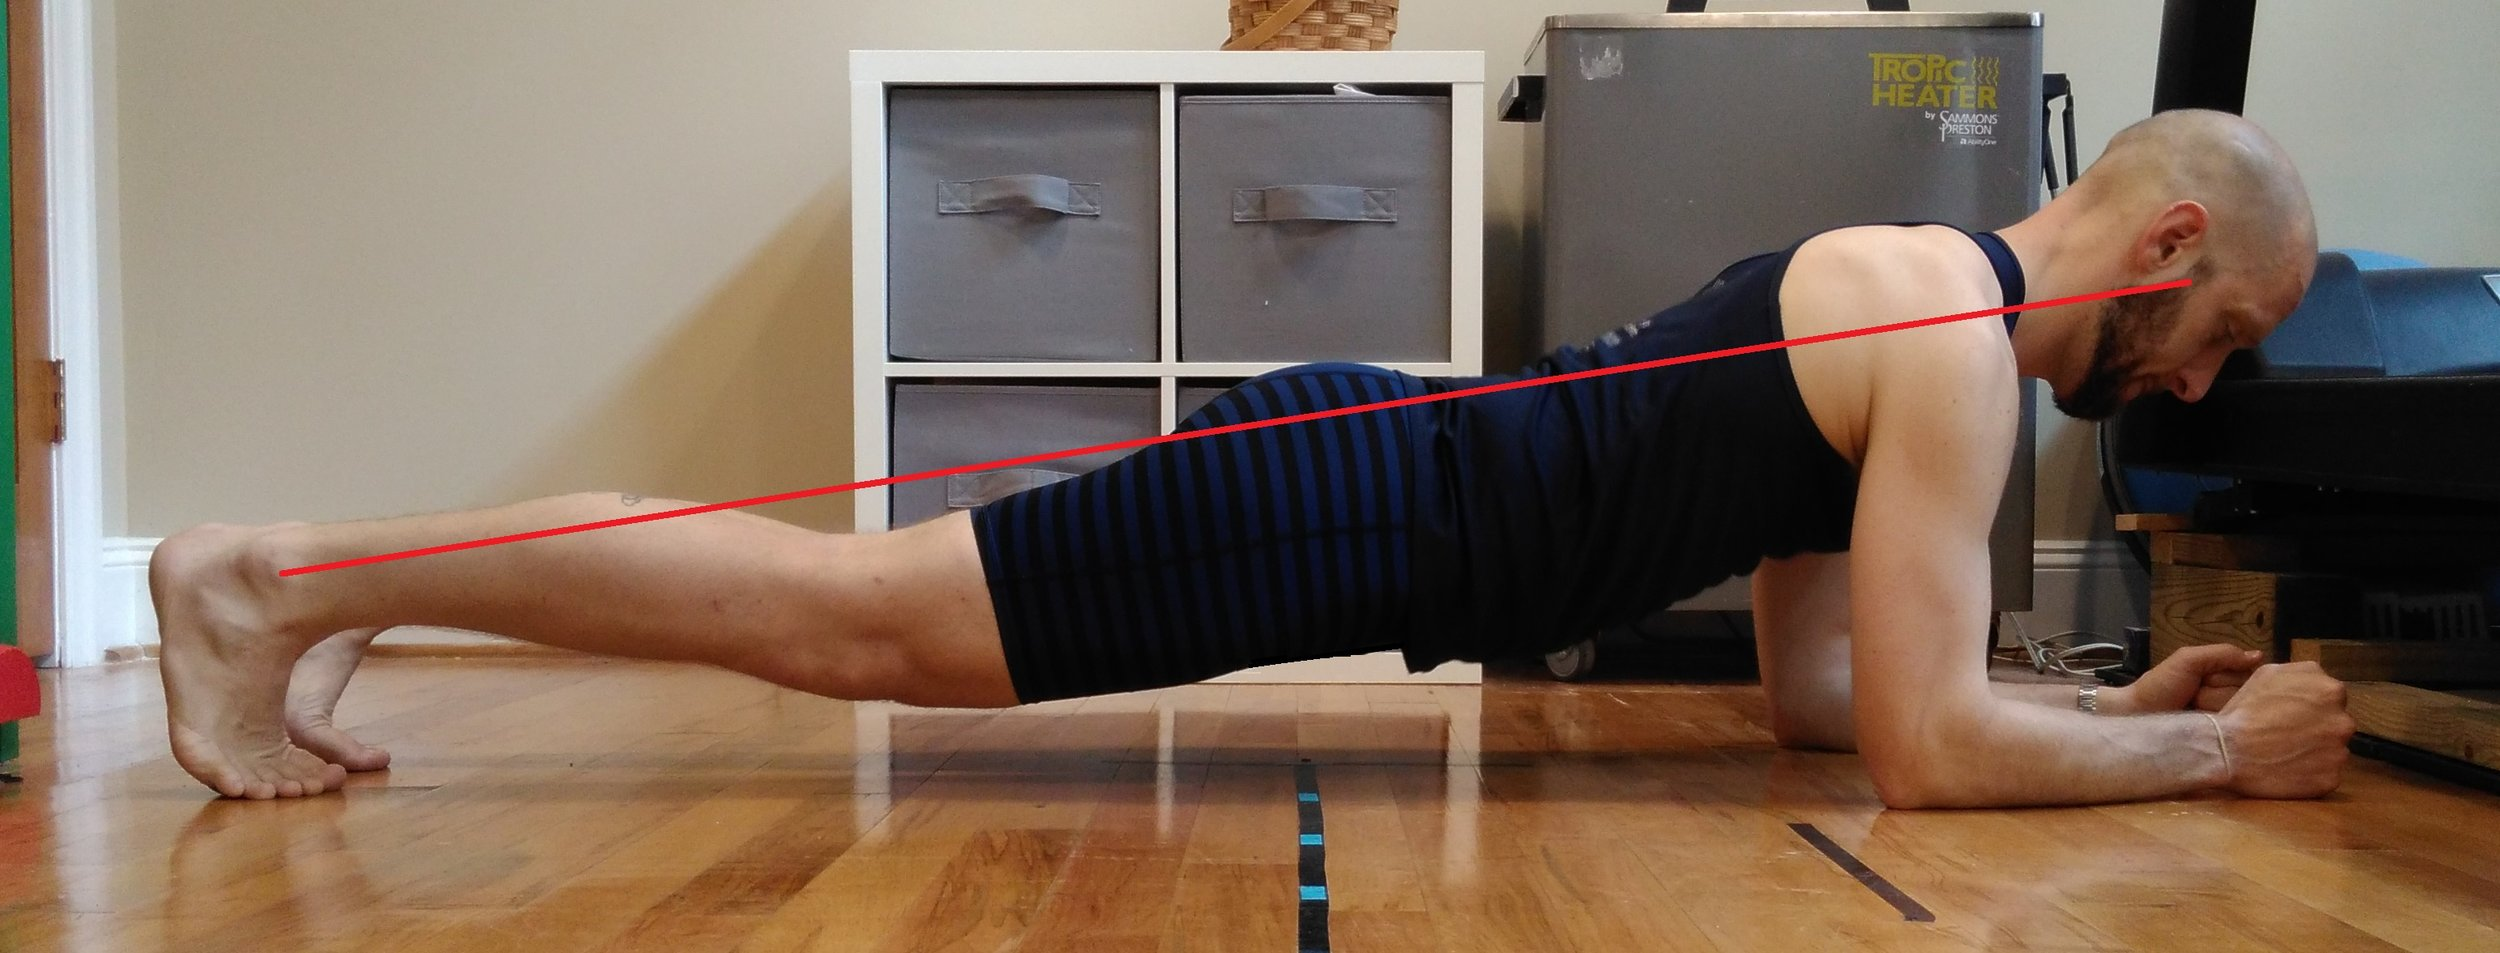 Sagging or overarching of the lower back can result from insufficient abdominal muscle strength, teaching the body to stabilize in less than optimal postures. The body sags below the line of neutral alignment.